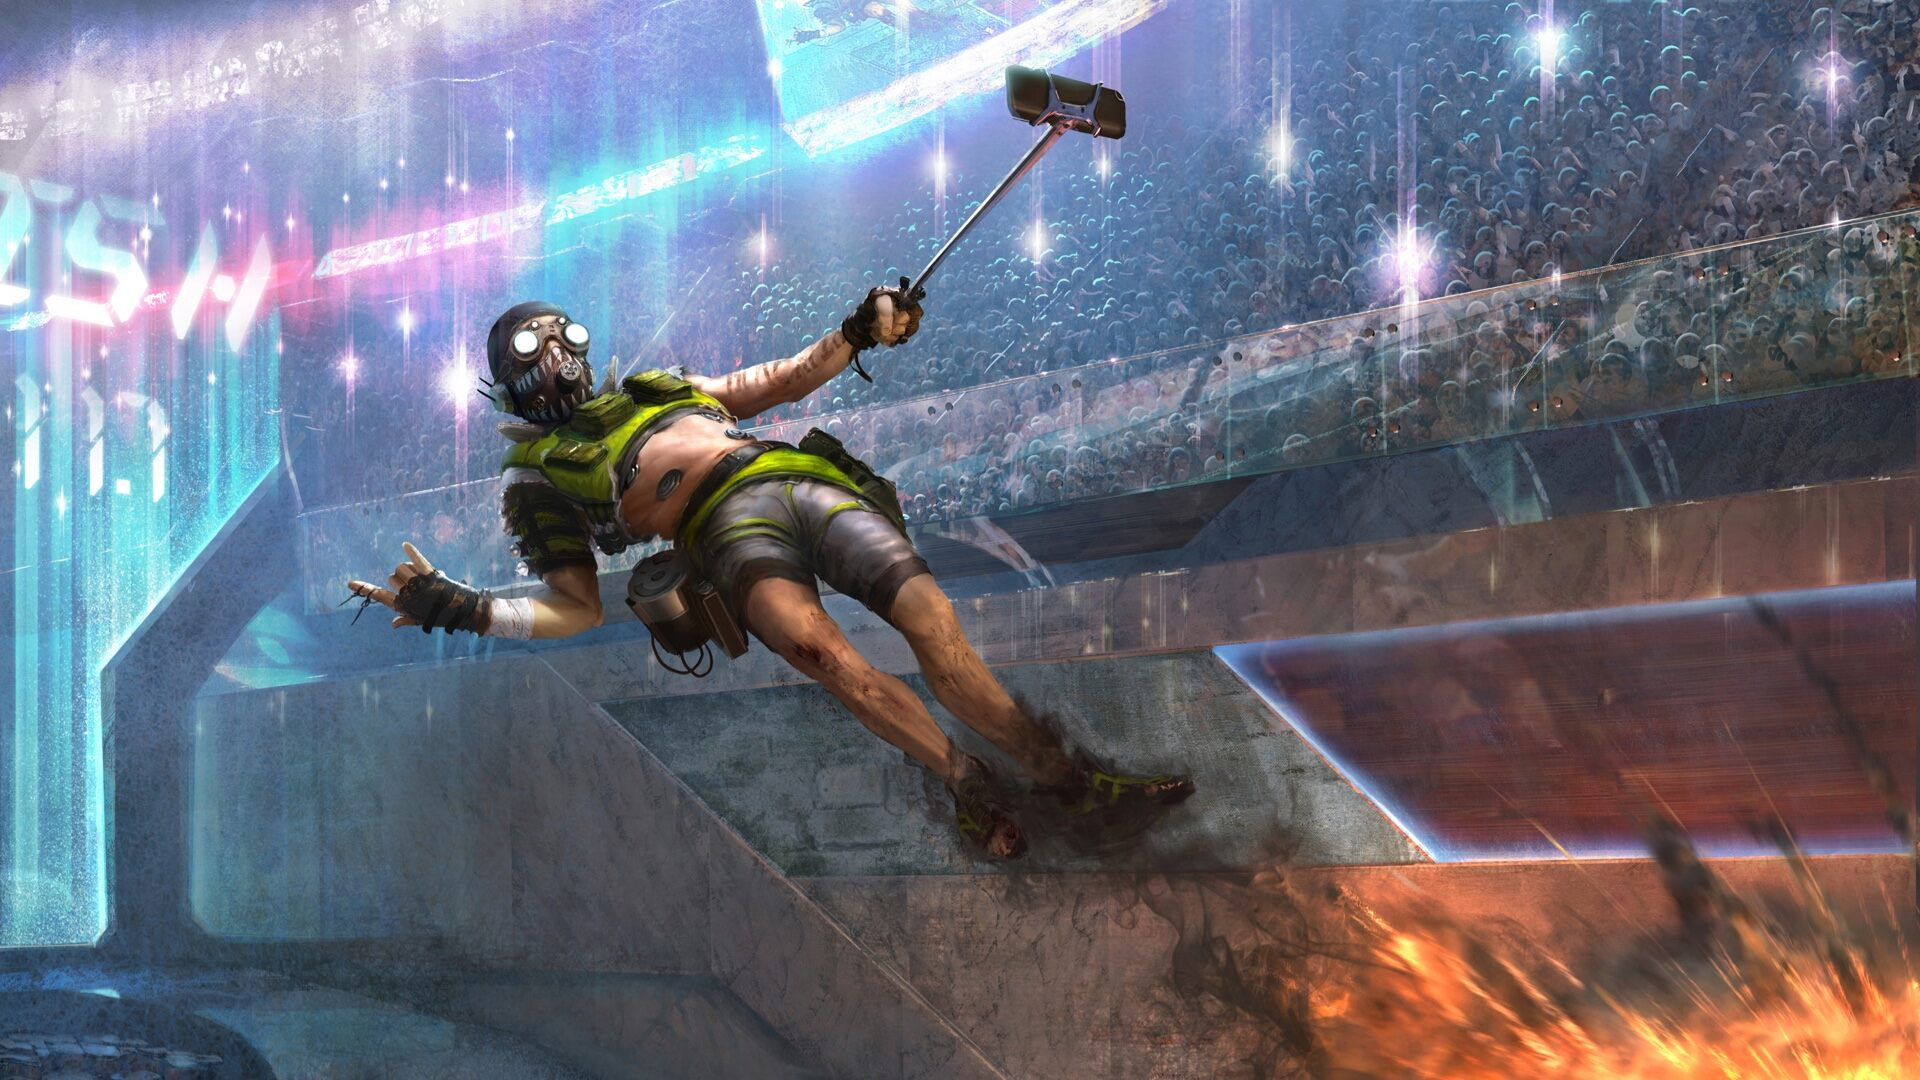 Apex Legends data miner discovers inaccuracy with Octane's head hitbox